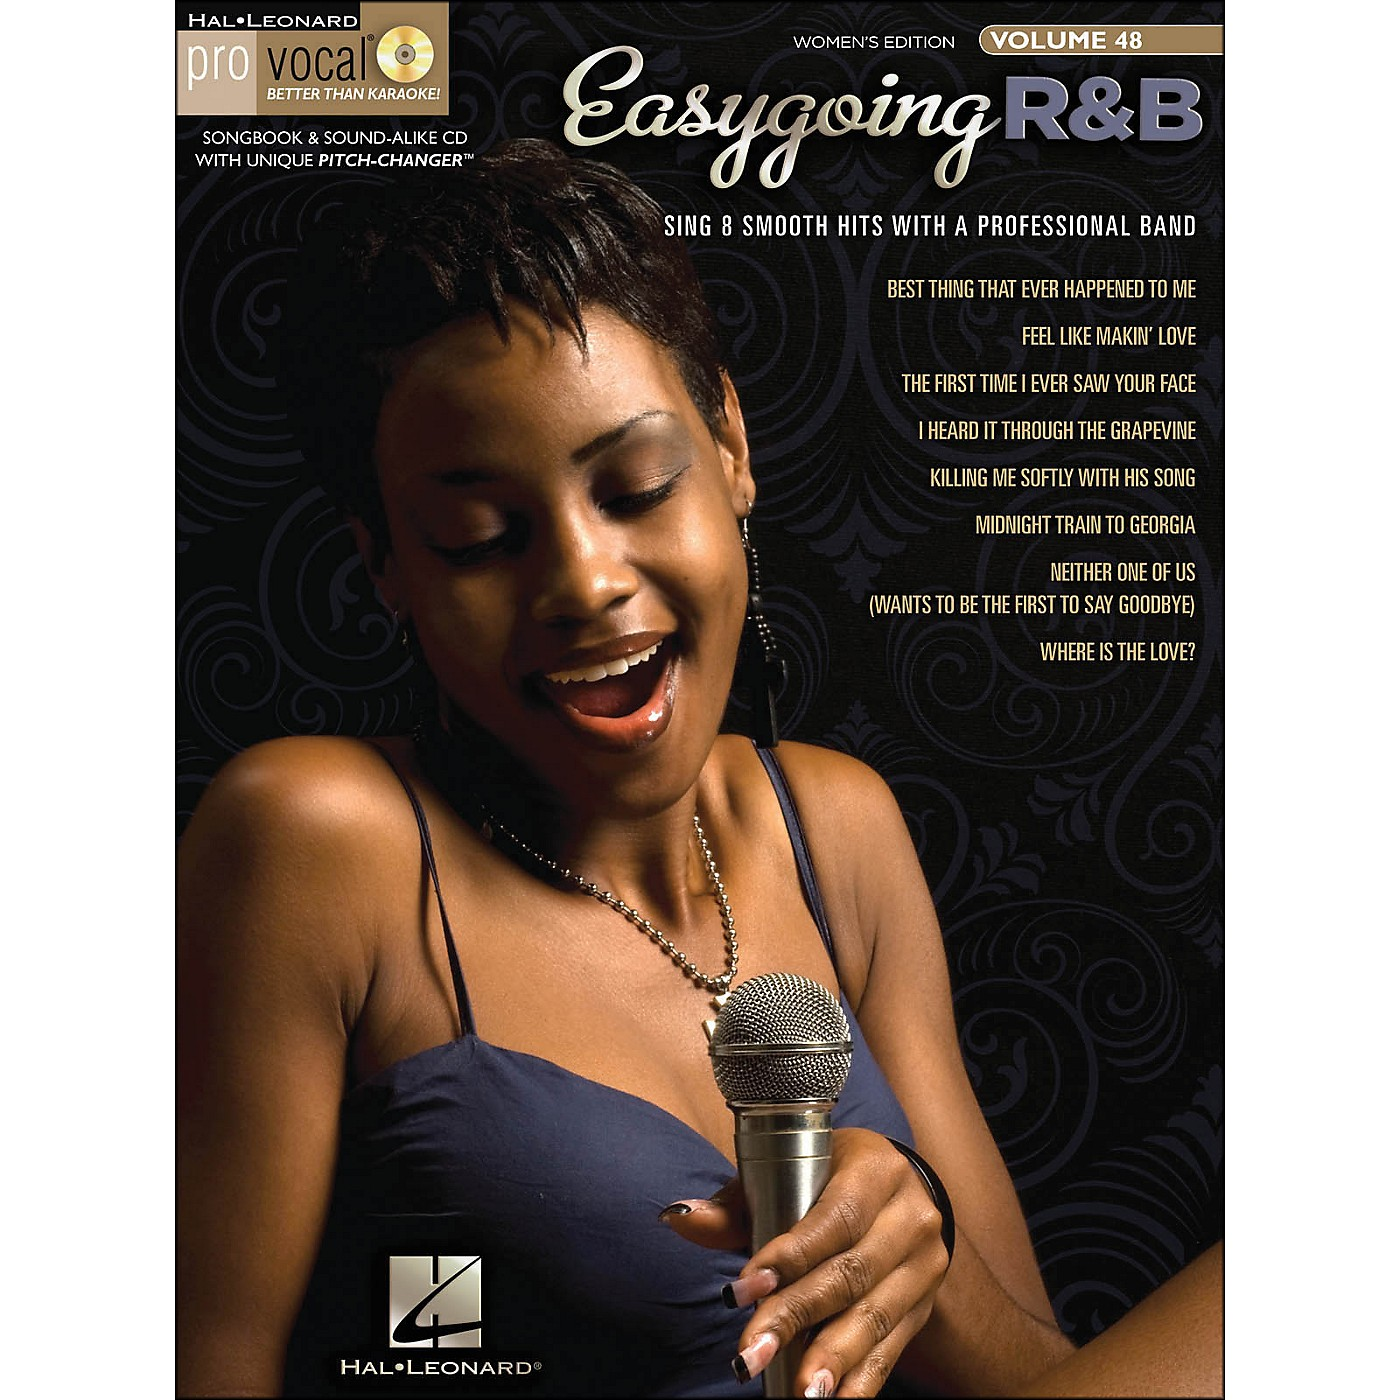 Hal Leonard Easygoing R&B Pro Vocal Songbook & CD for Female Singers Volume 48 thumbnail